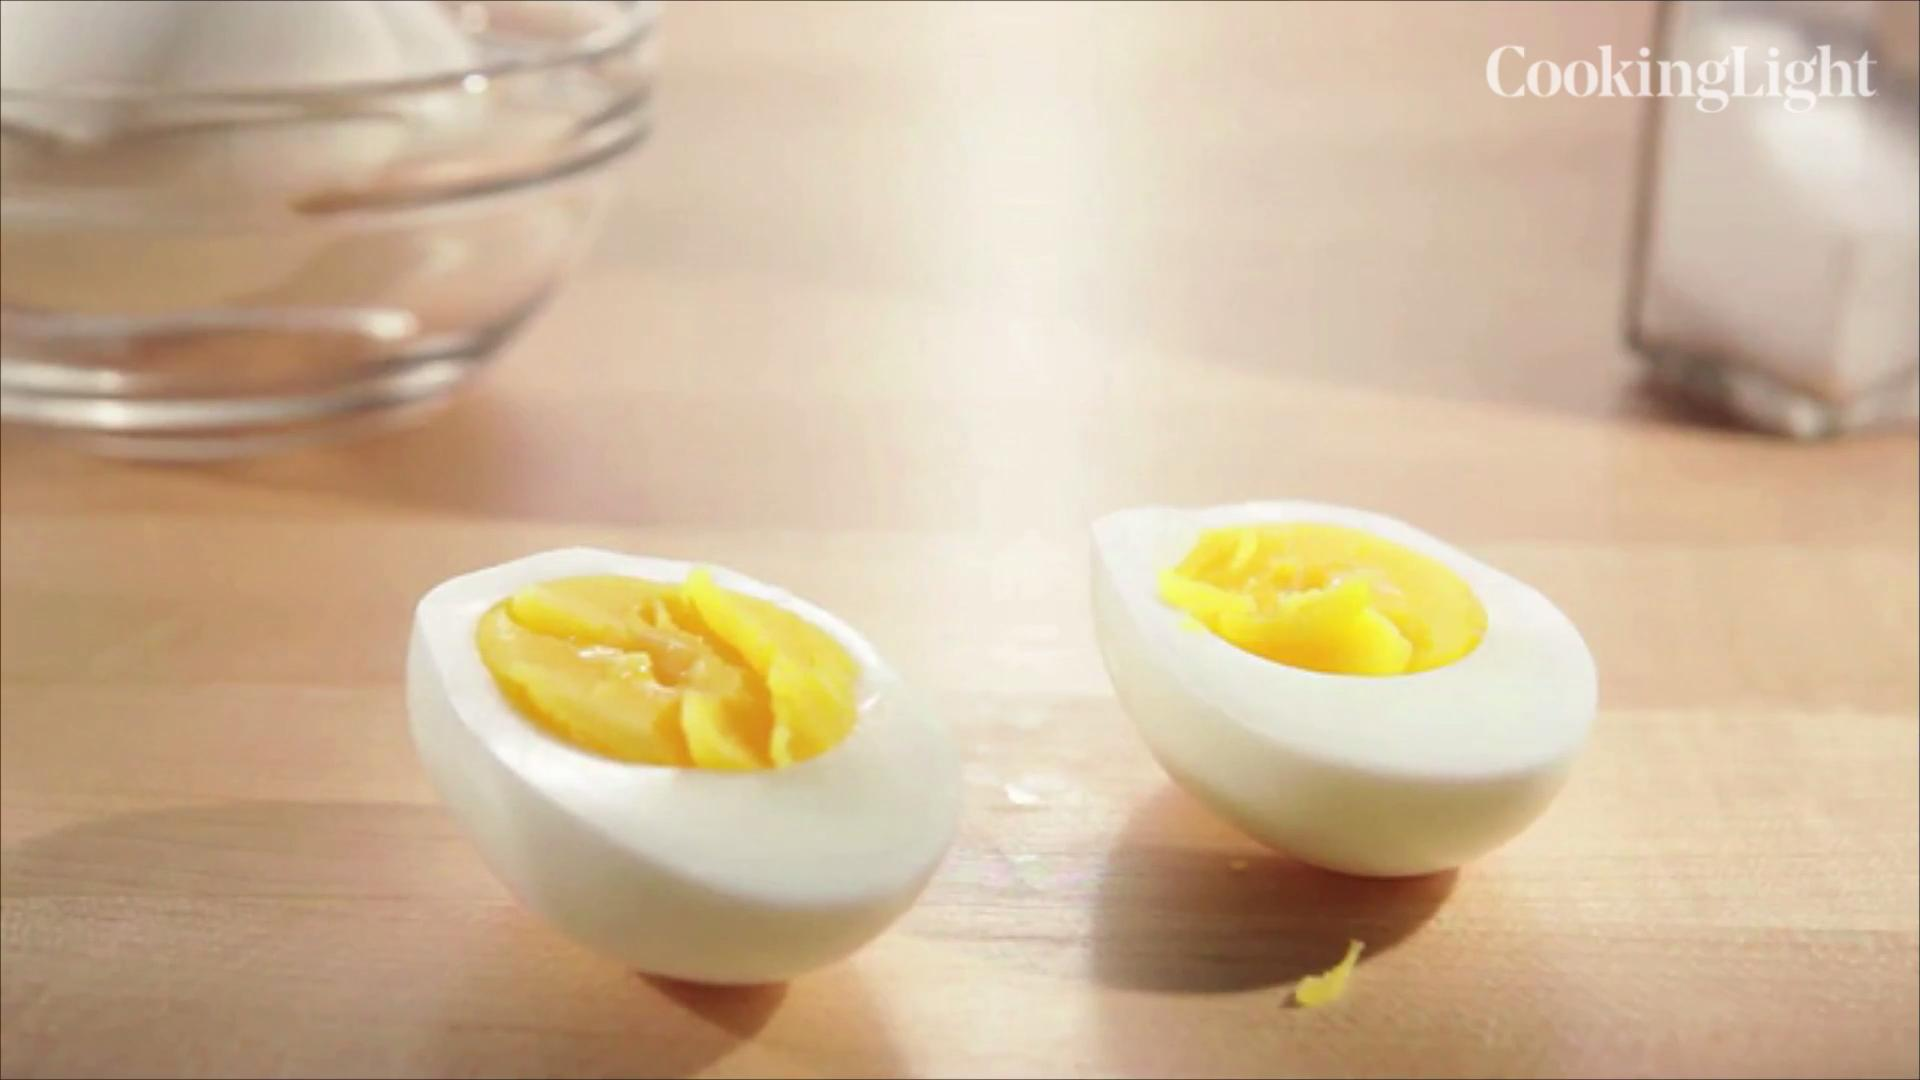 How Long Does It Take to Boil an Egg? | Cooking Light